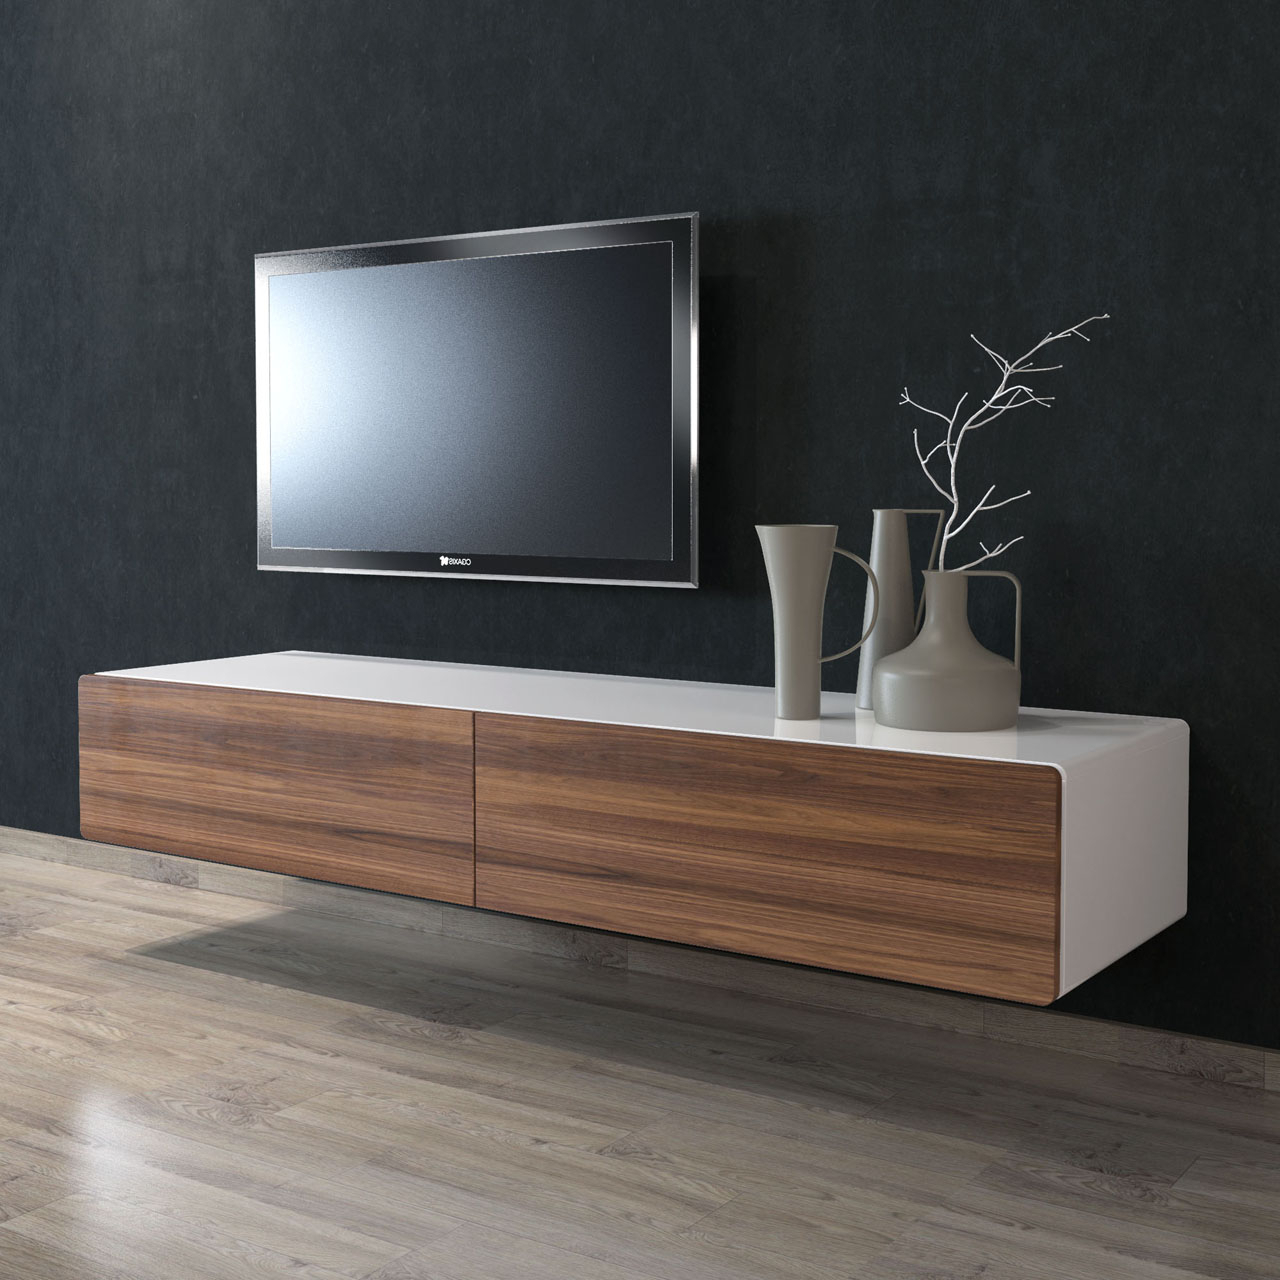 166Cm Floating Tv Unit – Gainsville For Most Recently Released Floating Tv Cabinets (Gallery 5 of 20)